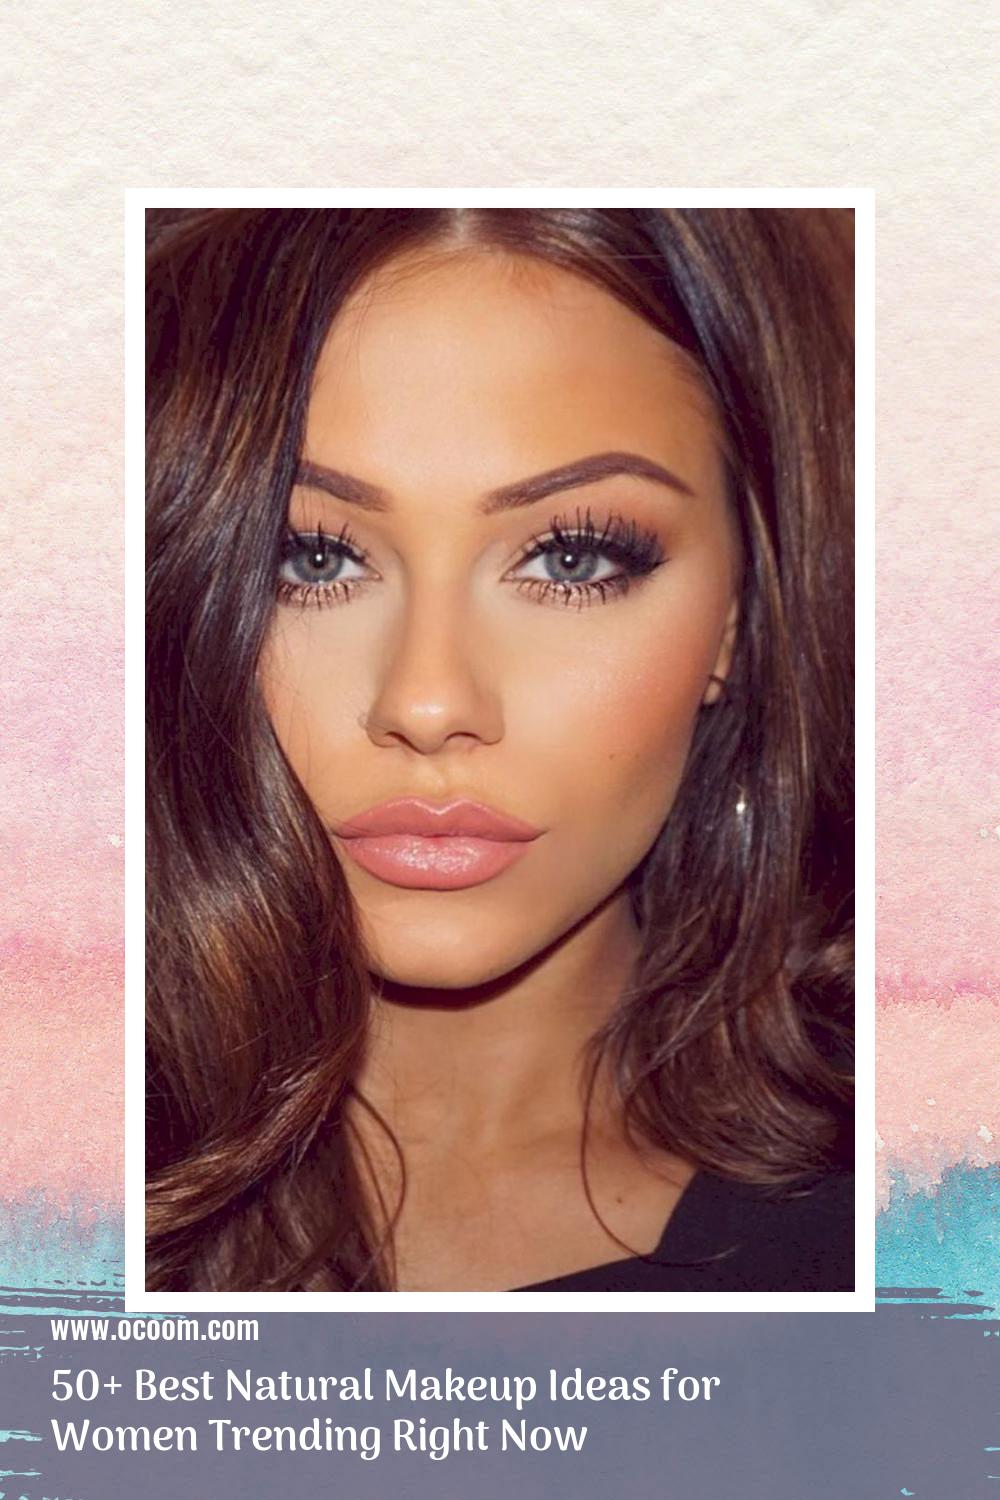 50+ Best Natural Makeup Ideas for Women Trending Right Now 3